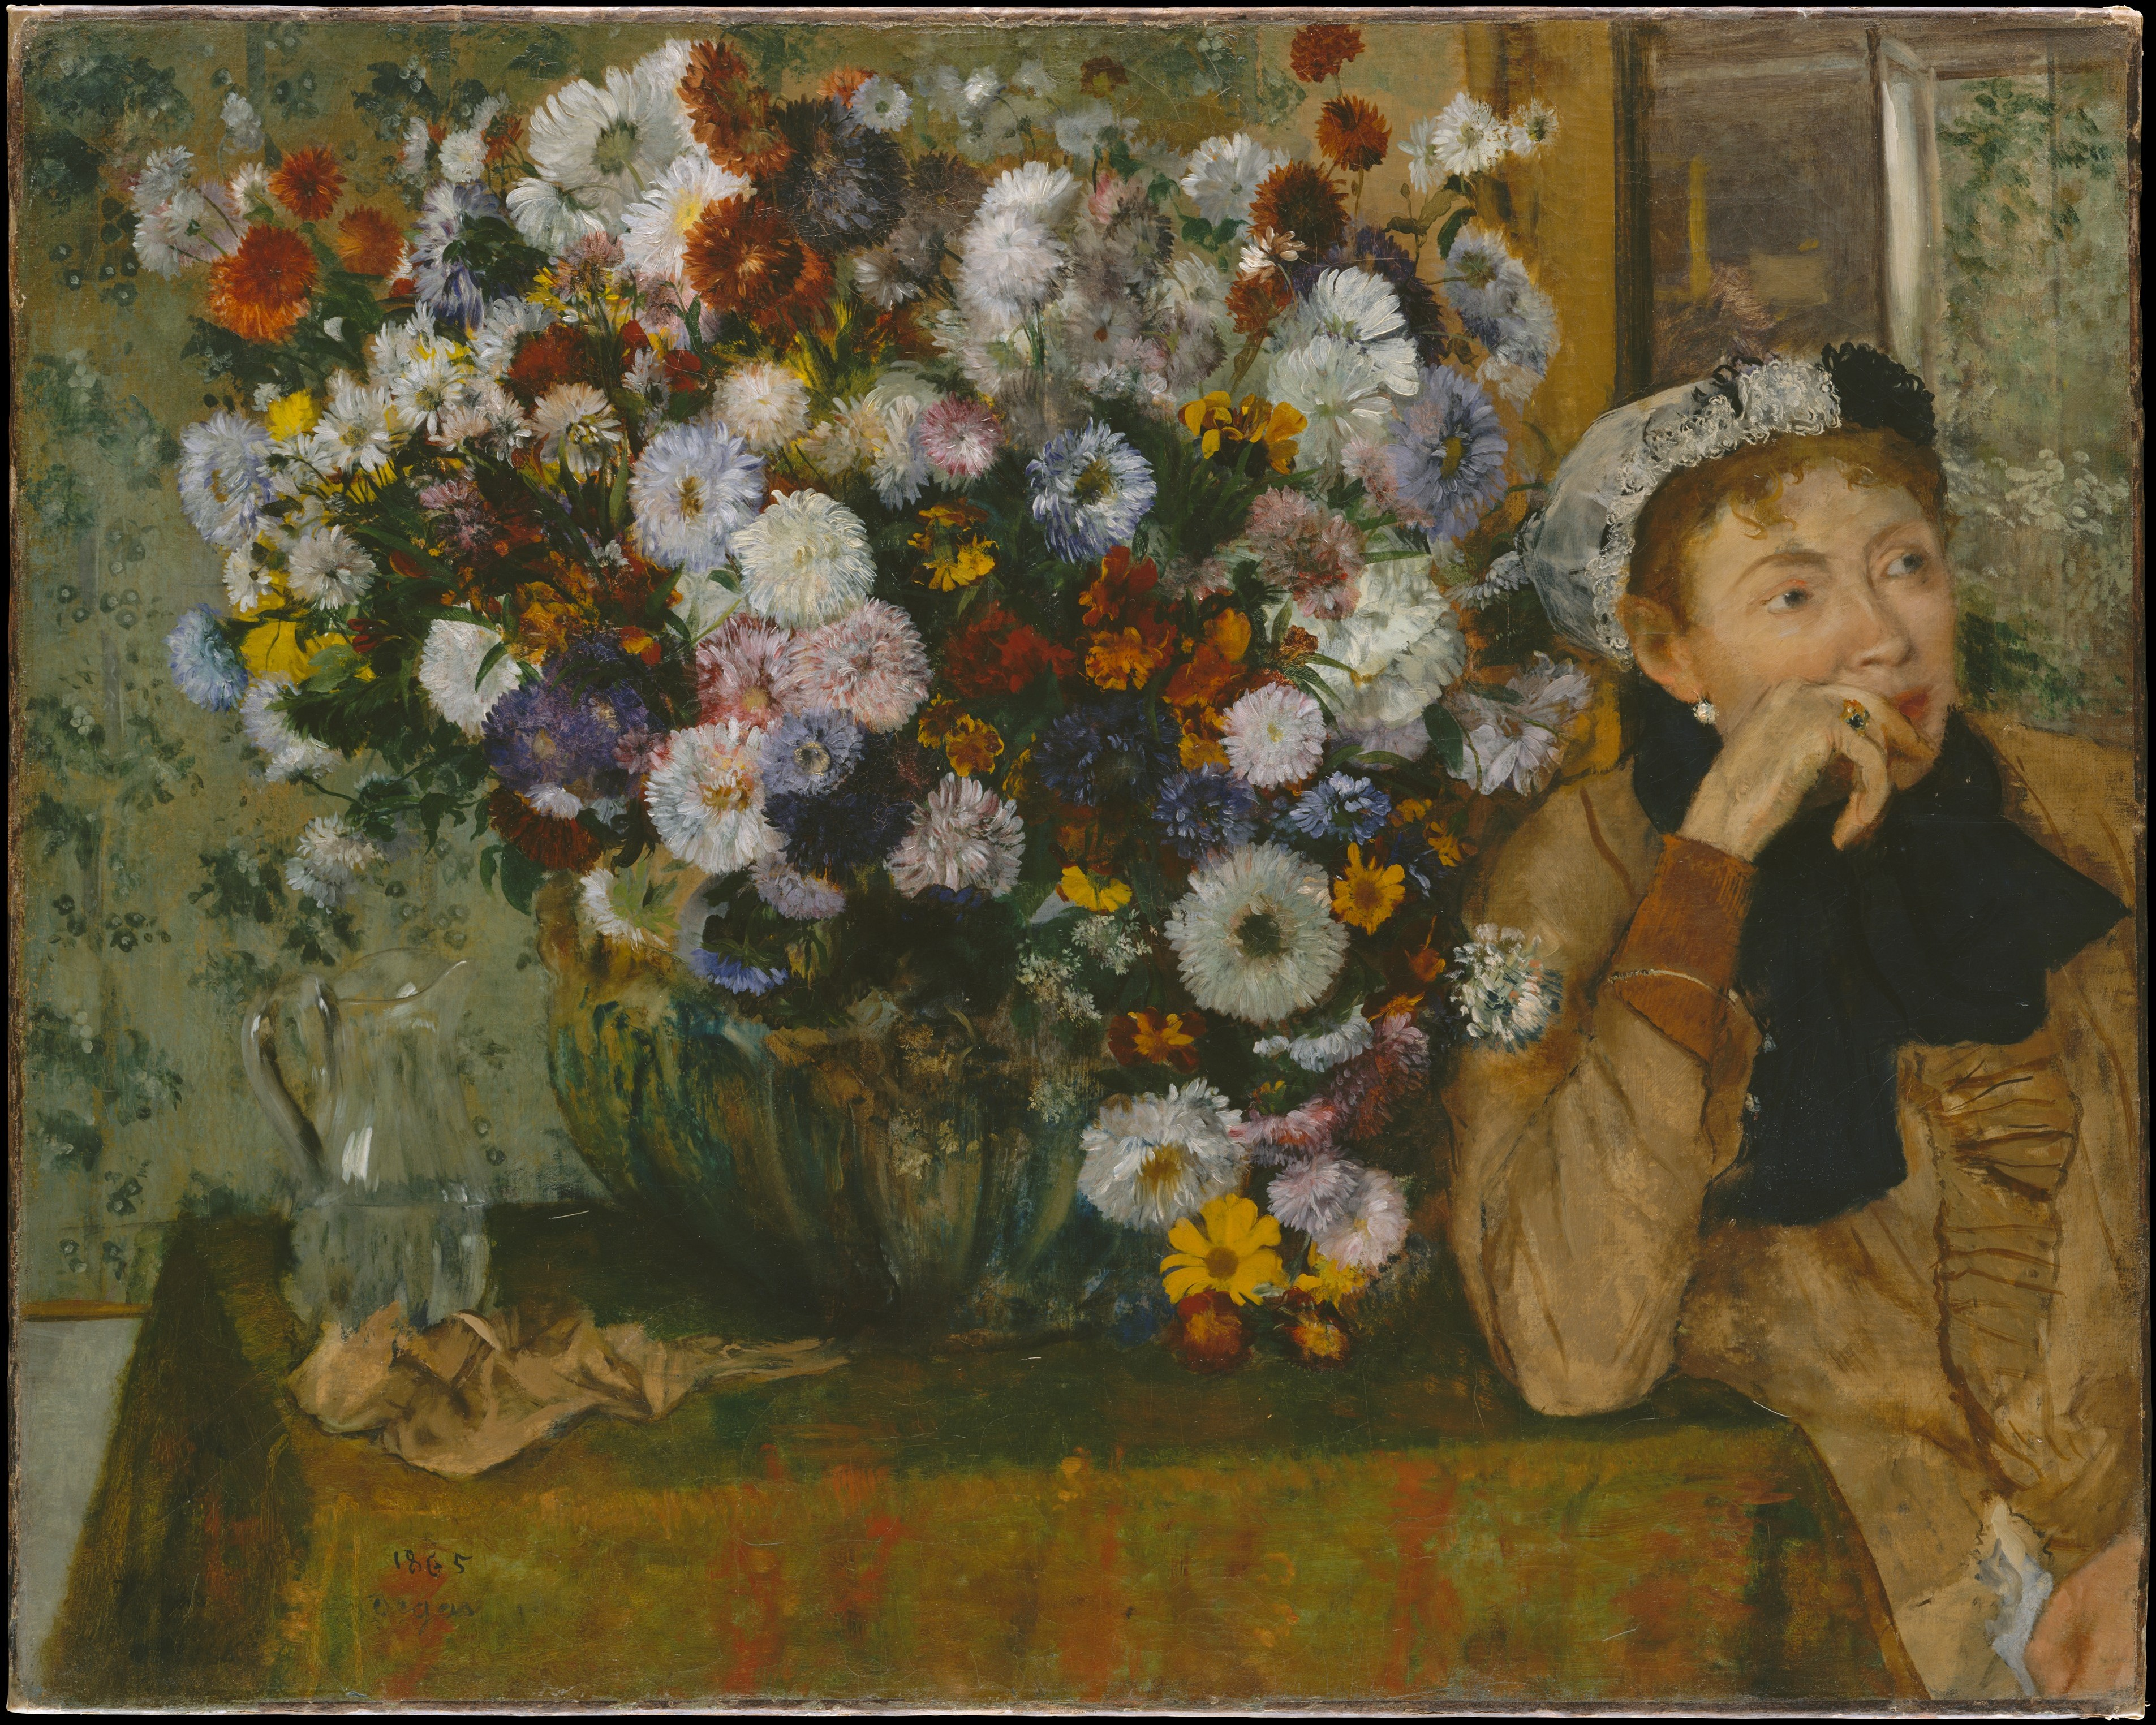 A Woman Seated beside a Vase of Flowers 1865